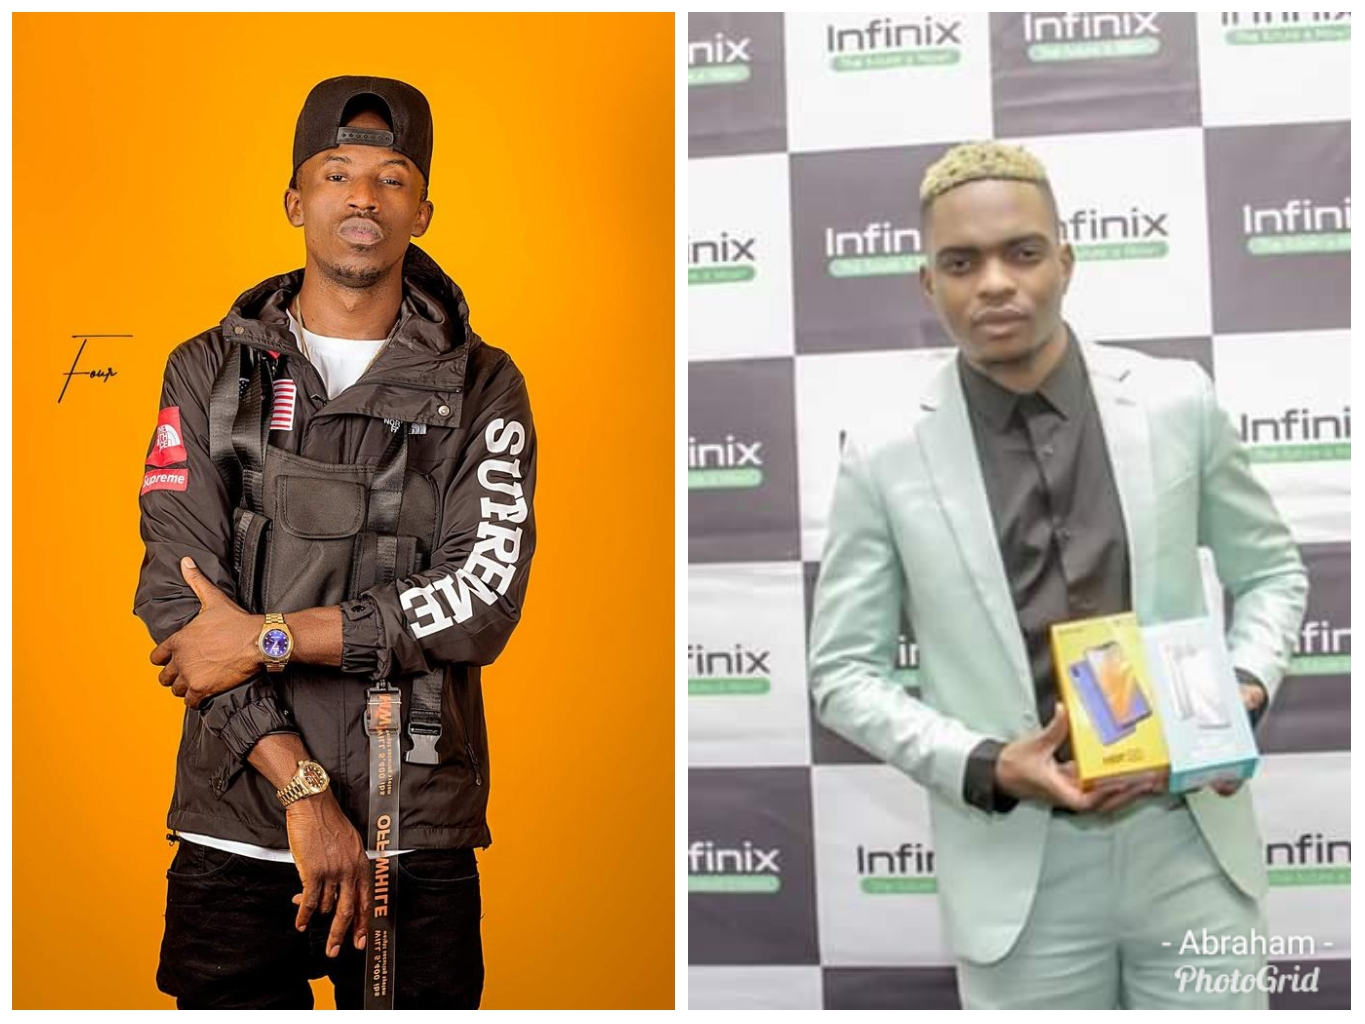 Chef 187 Reveals Why Bobby East Snatched The Infinix Deal